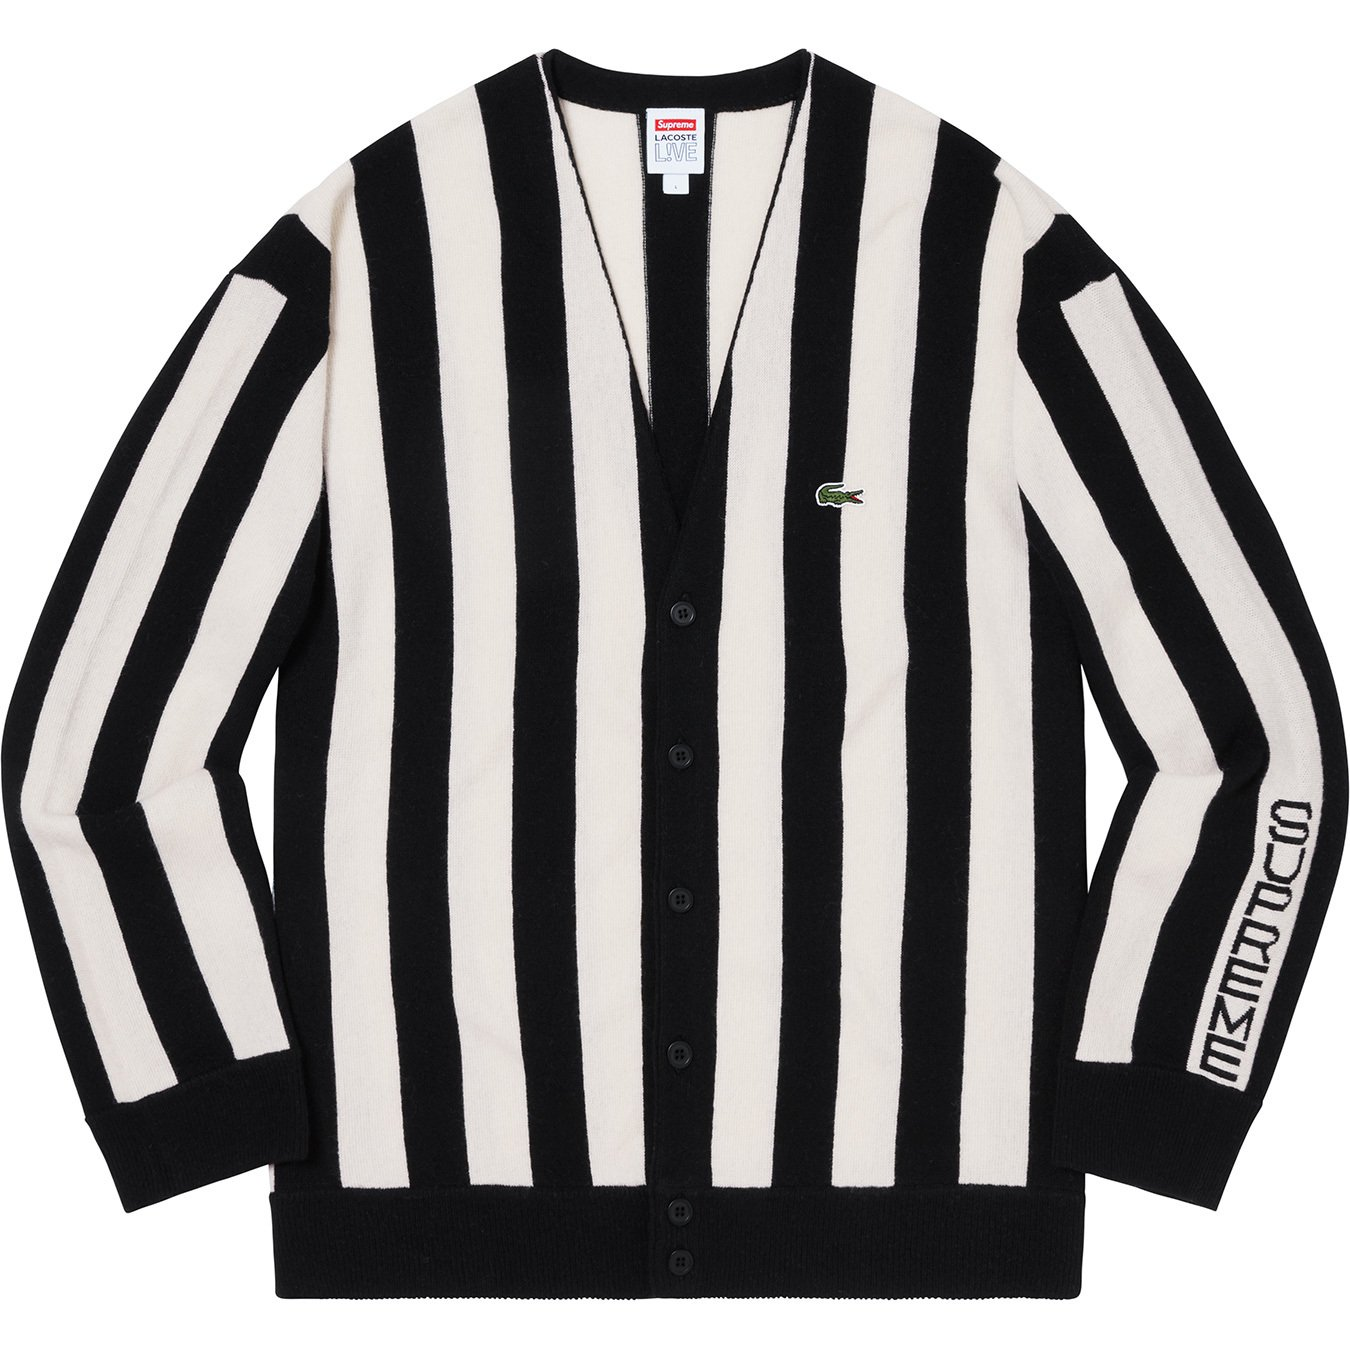 supreme-lacoste-19aw-19fw-collaboration-release-20190928-week5-stripe-cardigan